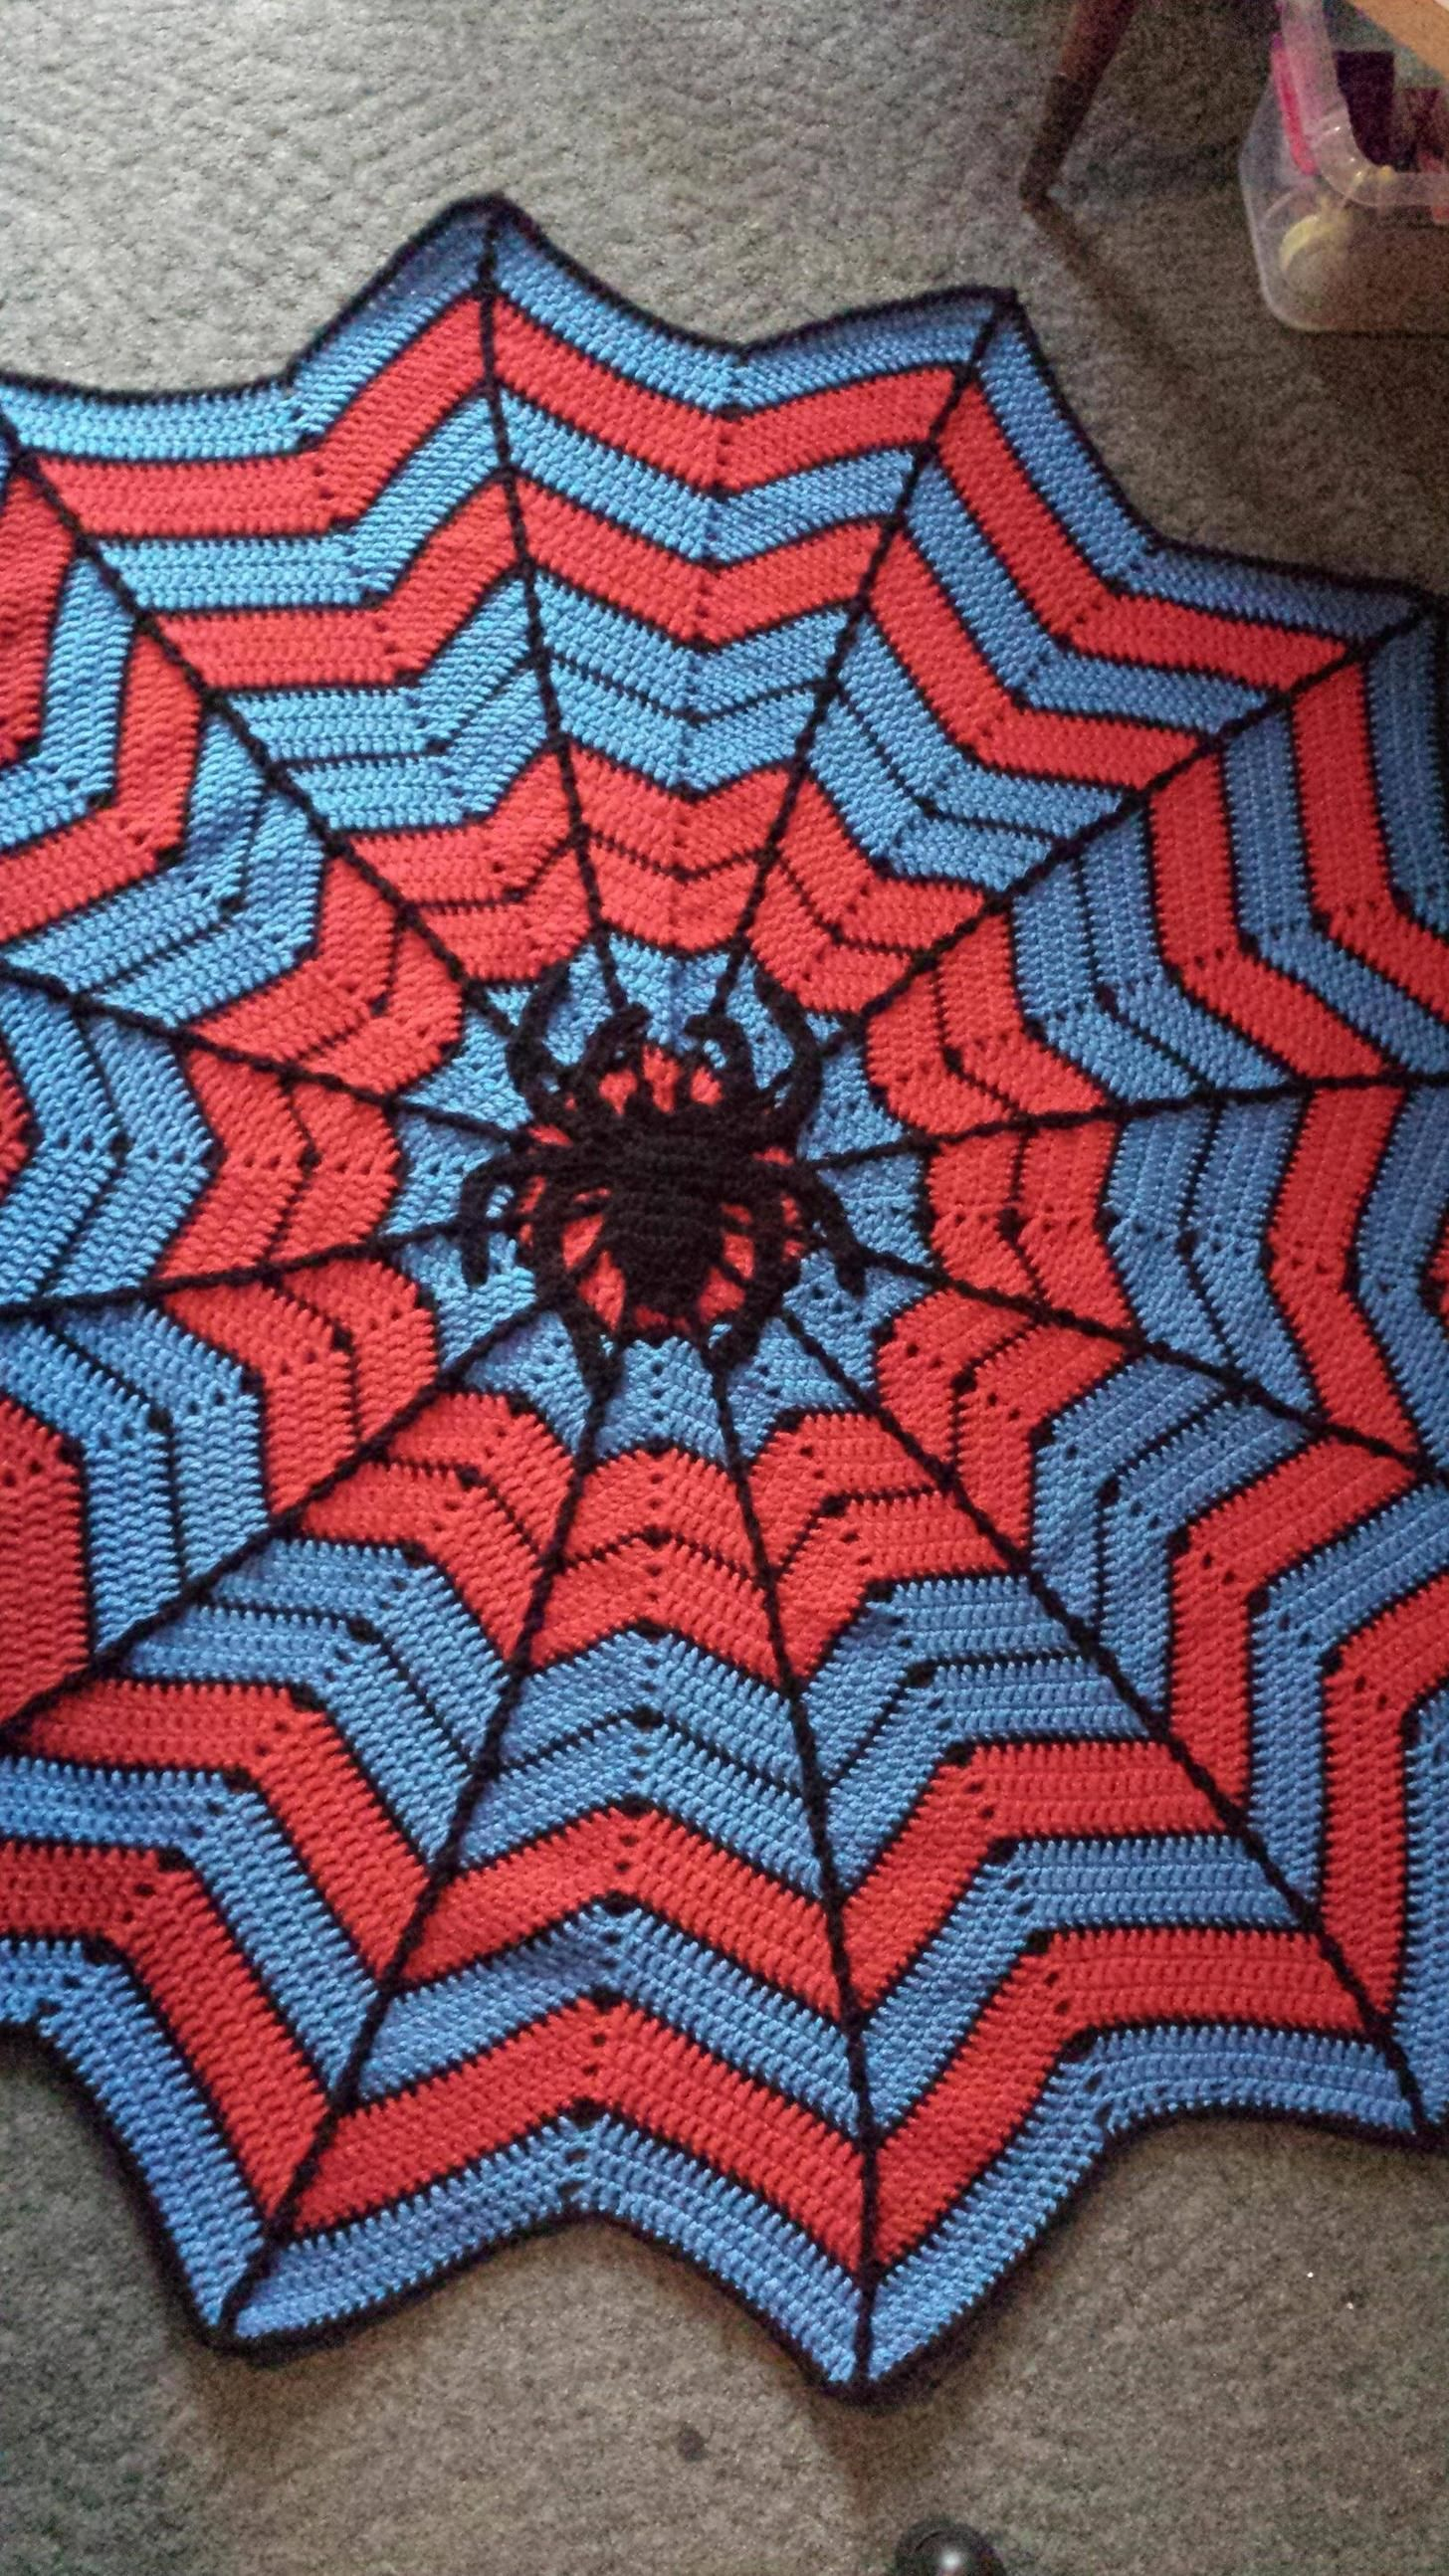 Finished a Spiderman spiderweb blanket for my little cousin ...